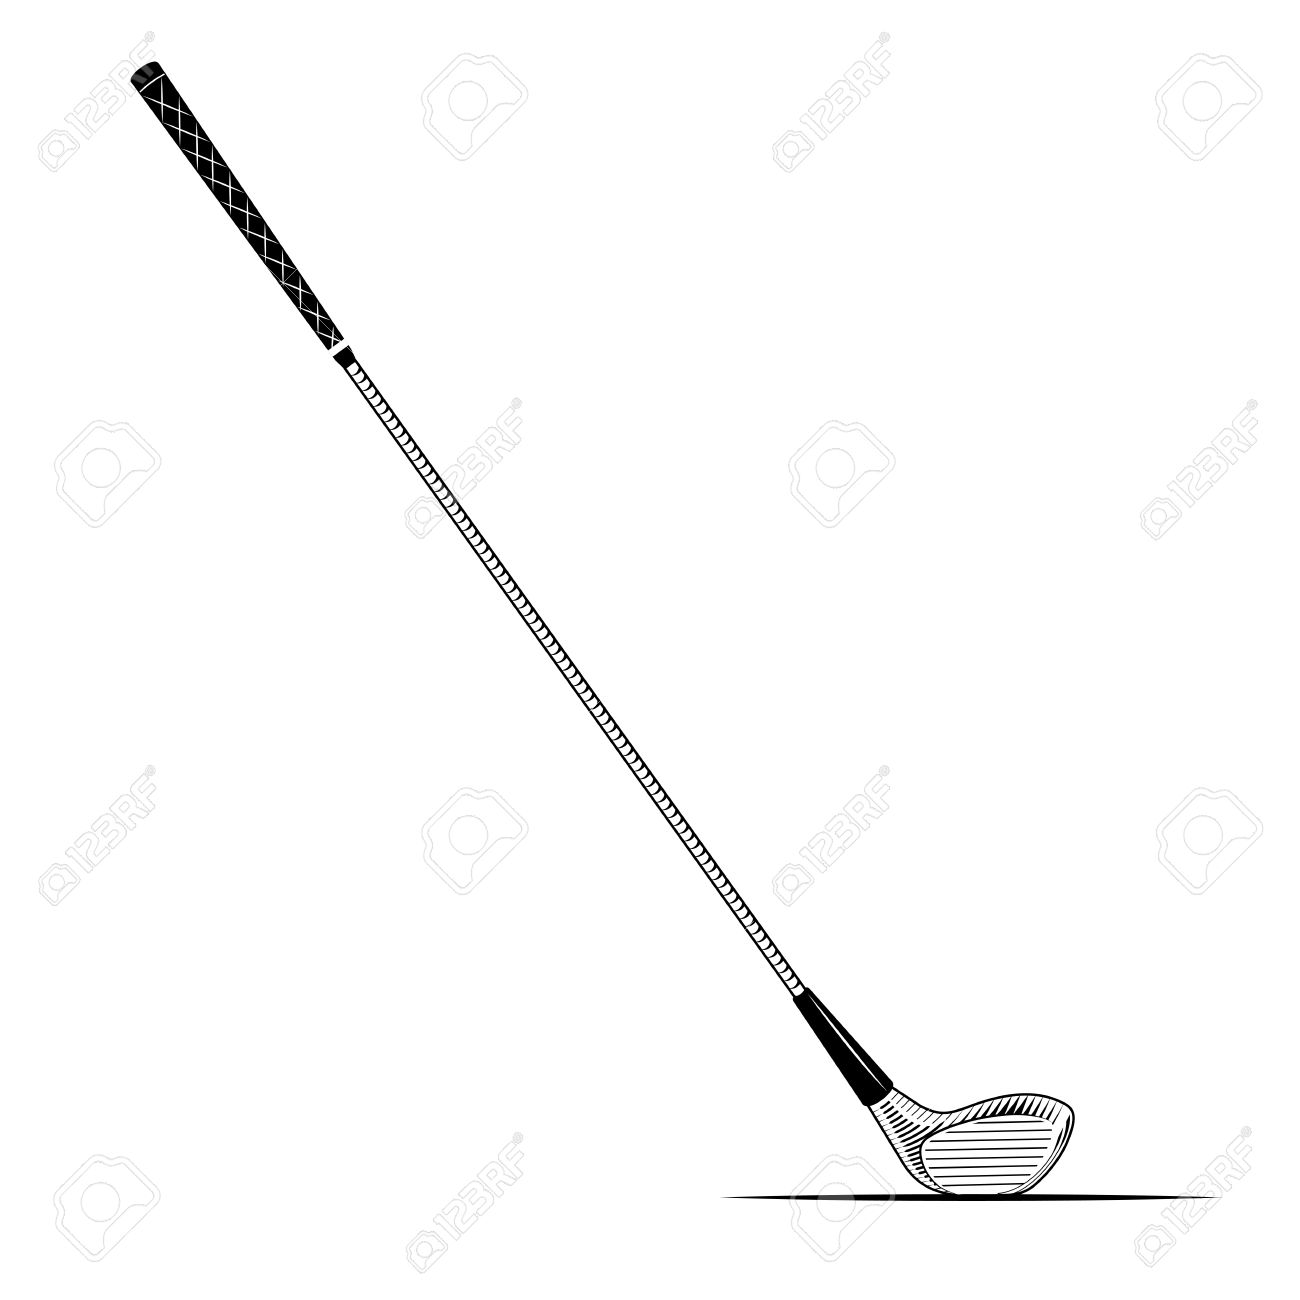 Golf Club Clipart 7.